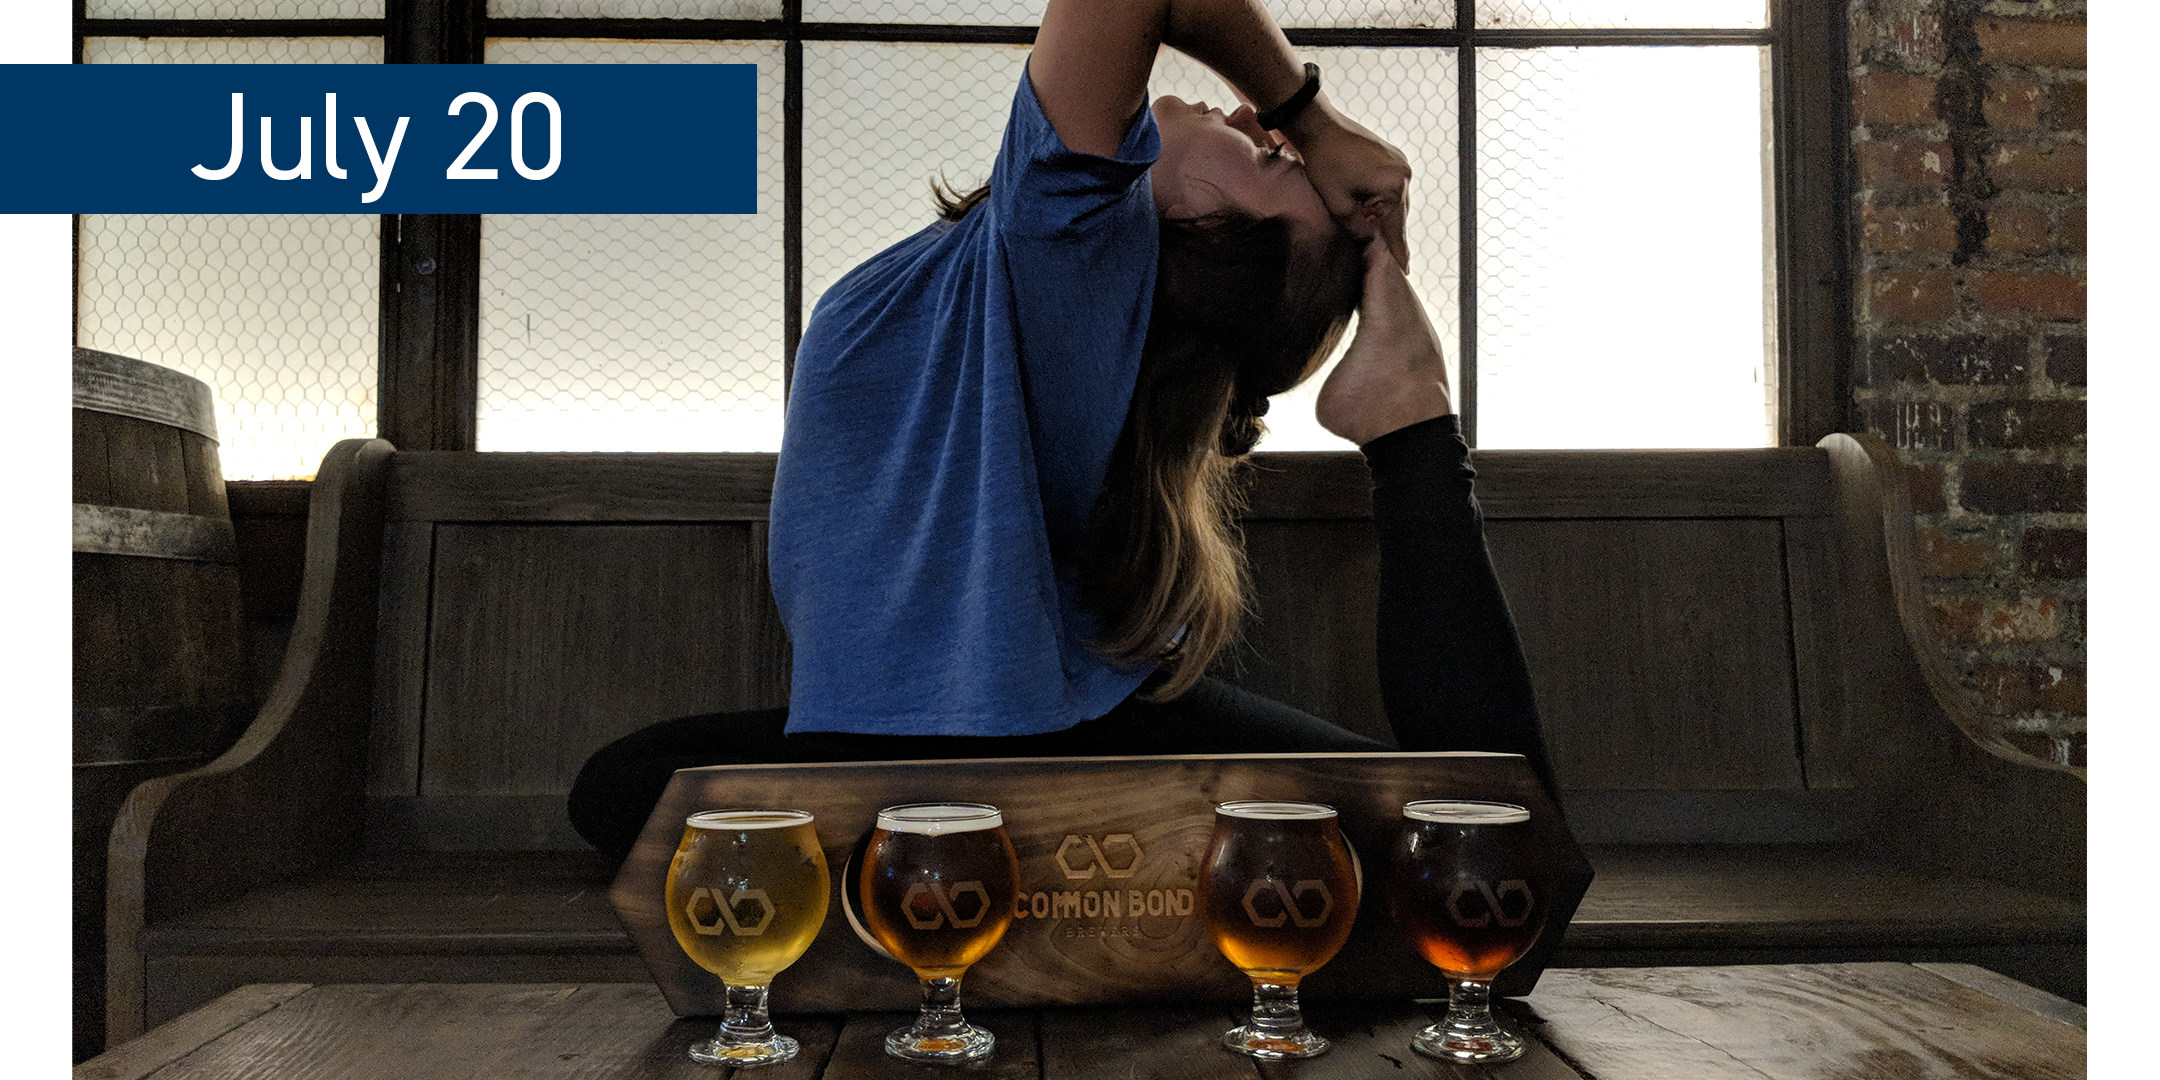 Bend & Brew - July 20.png